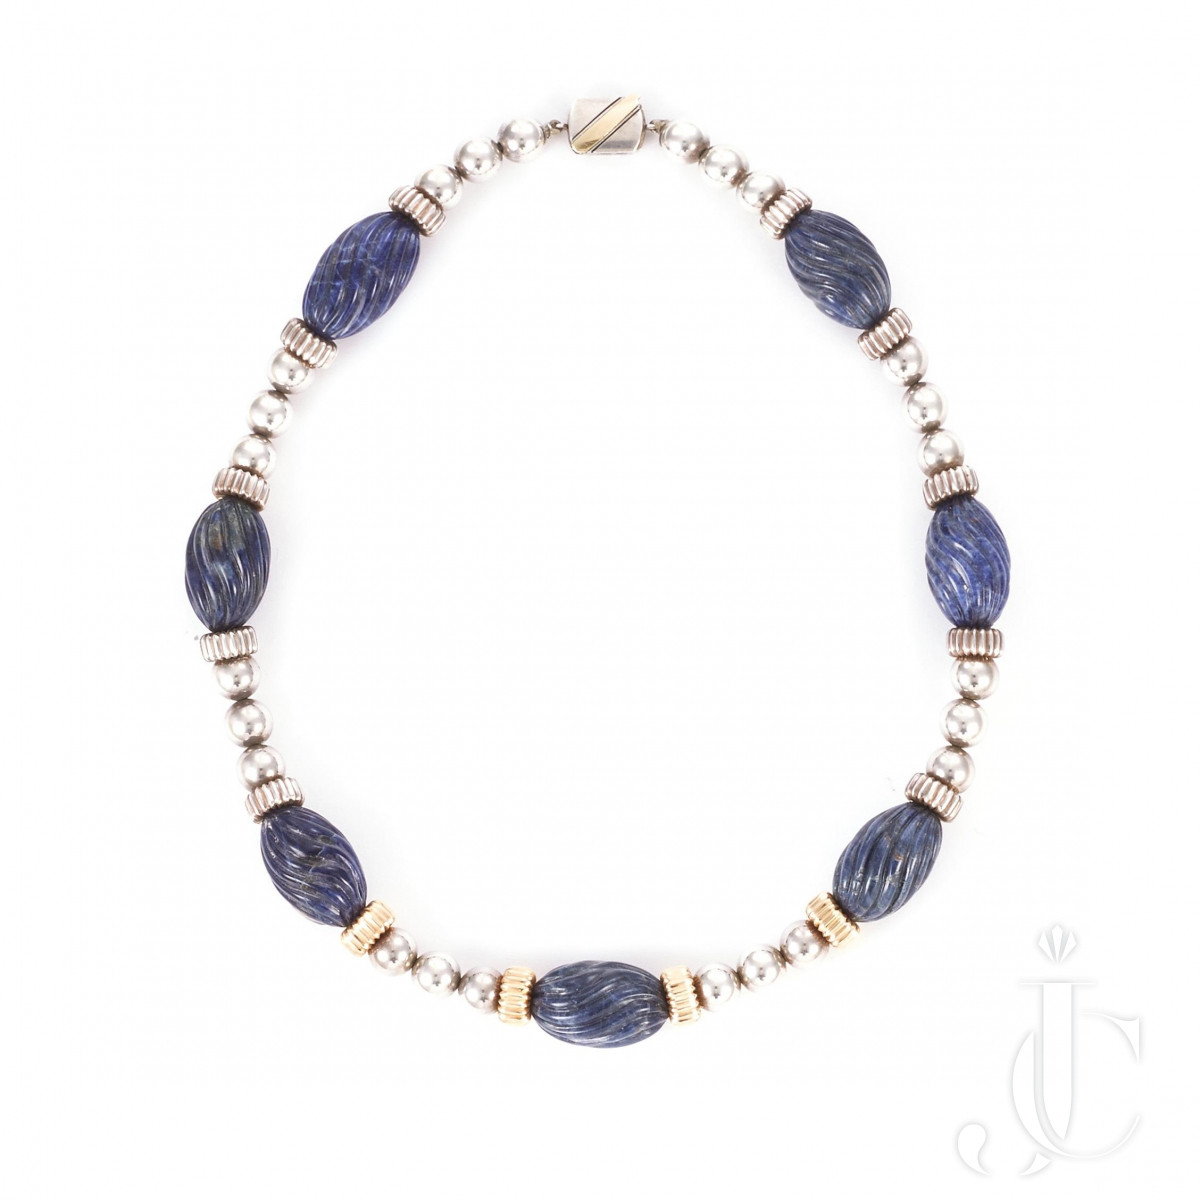 18k gold and Silver, lapis necklace, Cartier